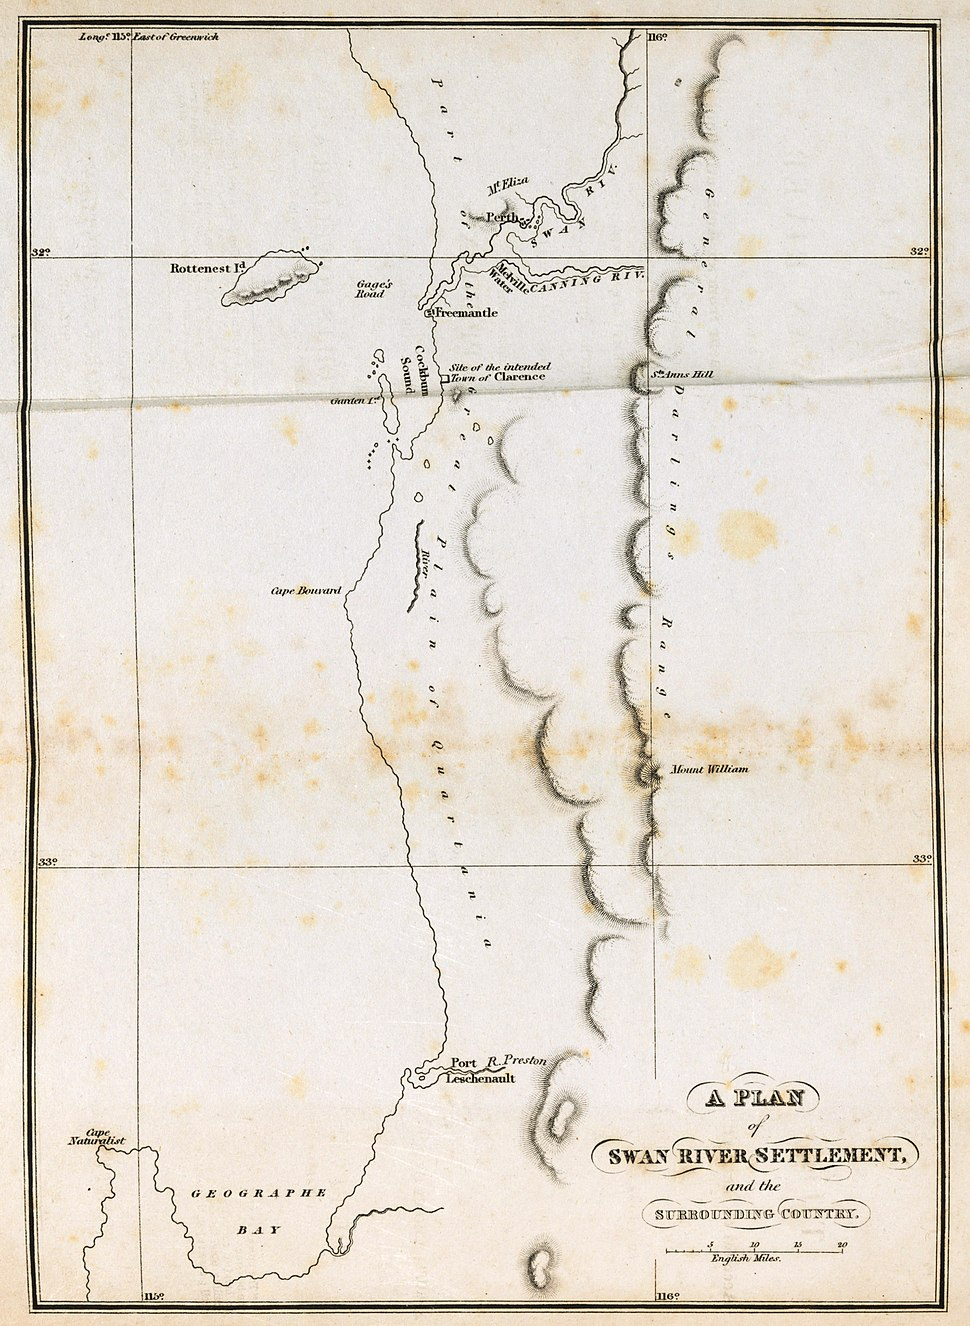 A Plan of Swan River Settlement and Surrounding Country